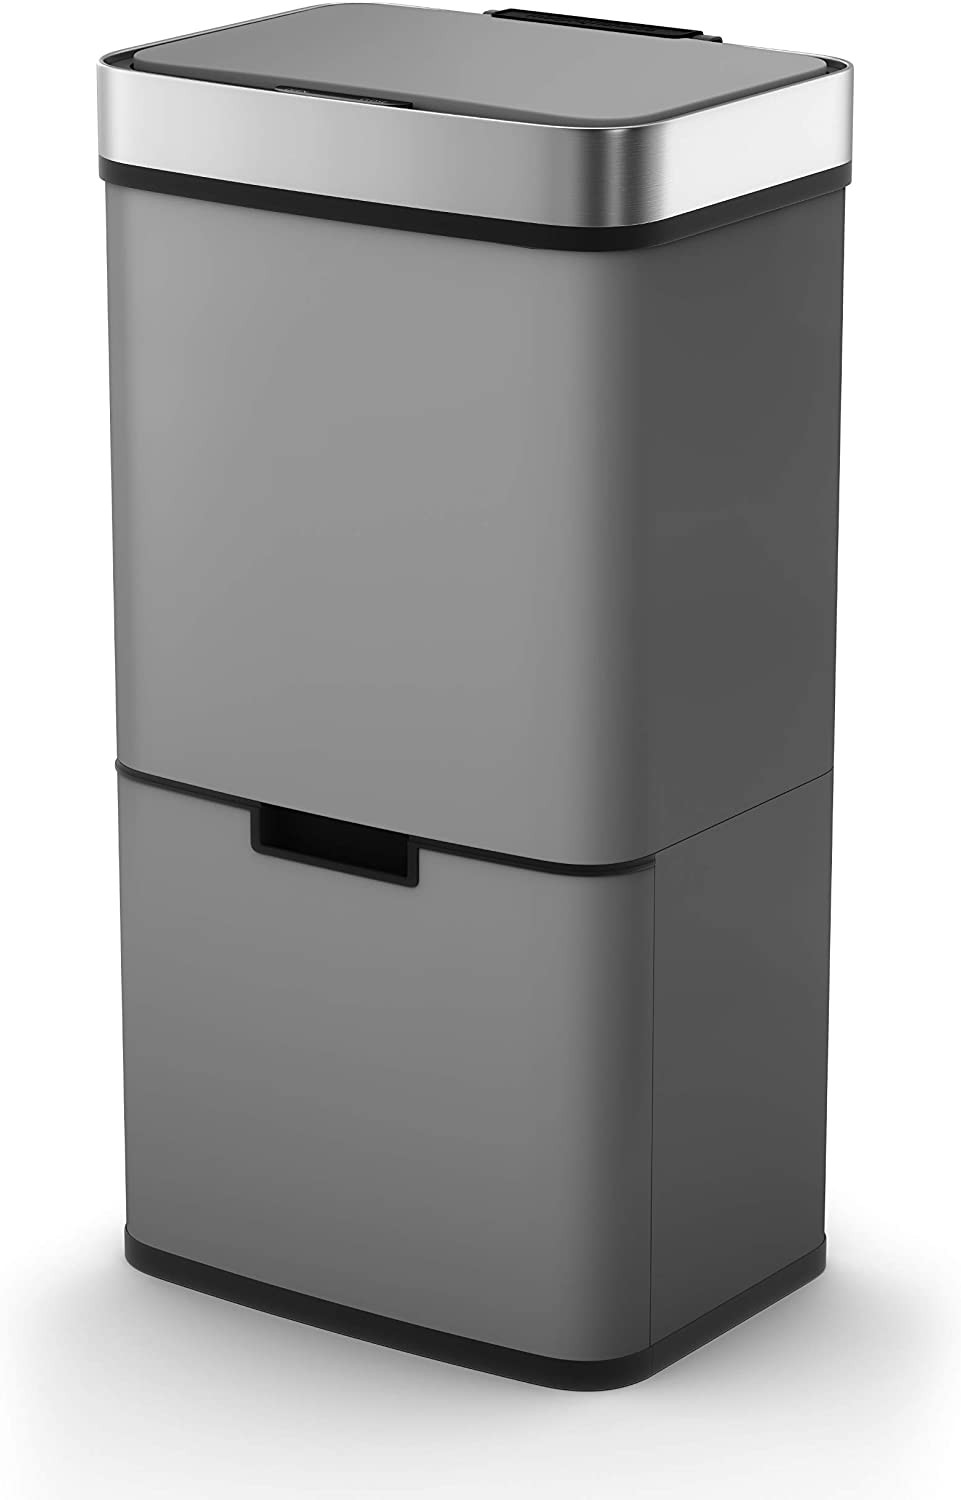 Morphy Richards Kitchen Bin, square which has compartments, 75L, great for recycling